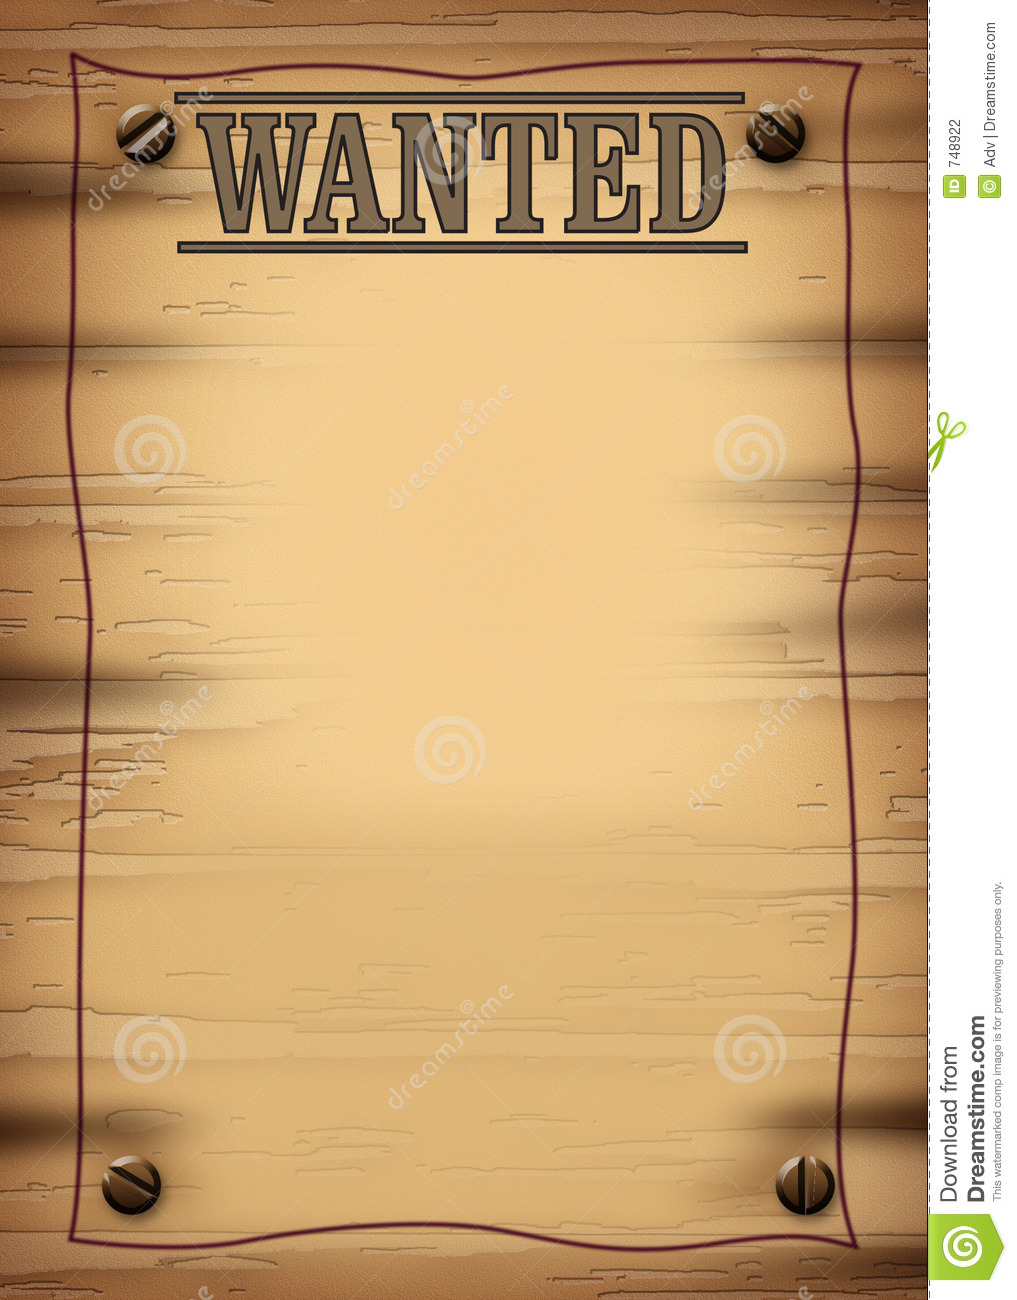 Wanted 2 Jpg Stock Photography Image 748922